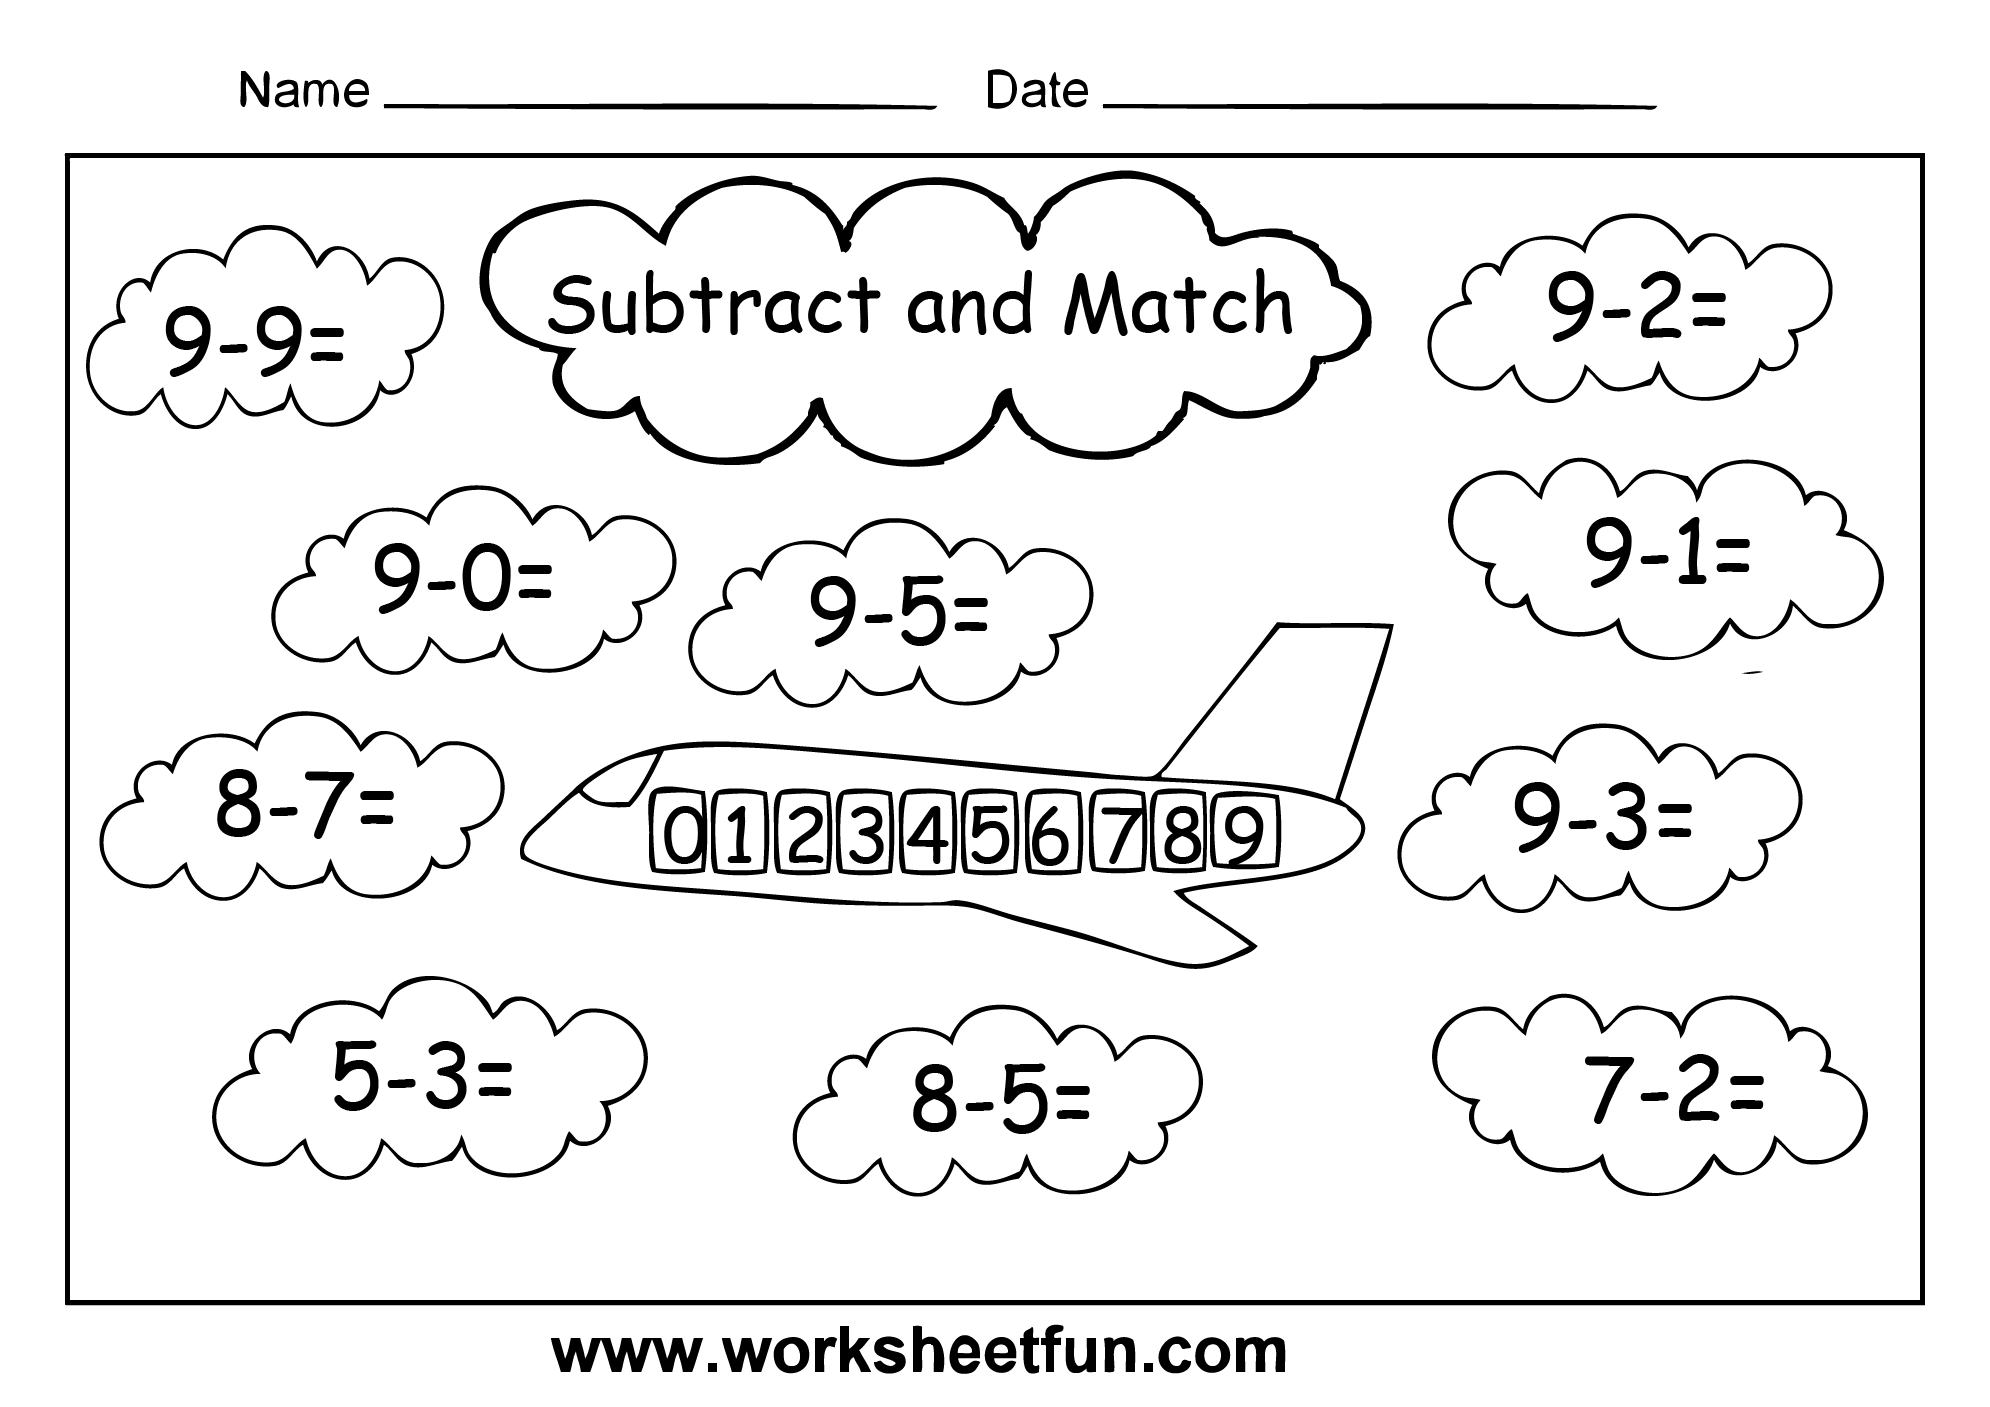 math worksheet : 1000 images about worksheets on pinterest  first grade math  : Subtraction Printable Worksheets